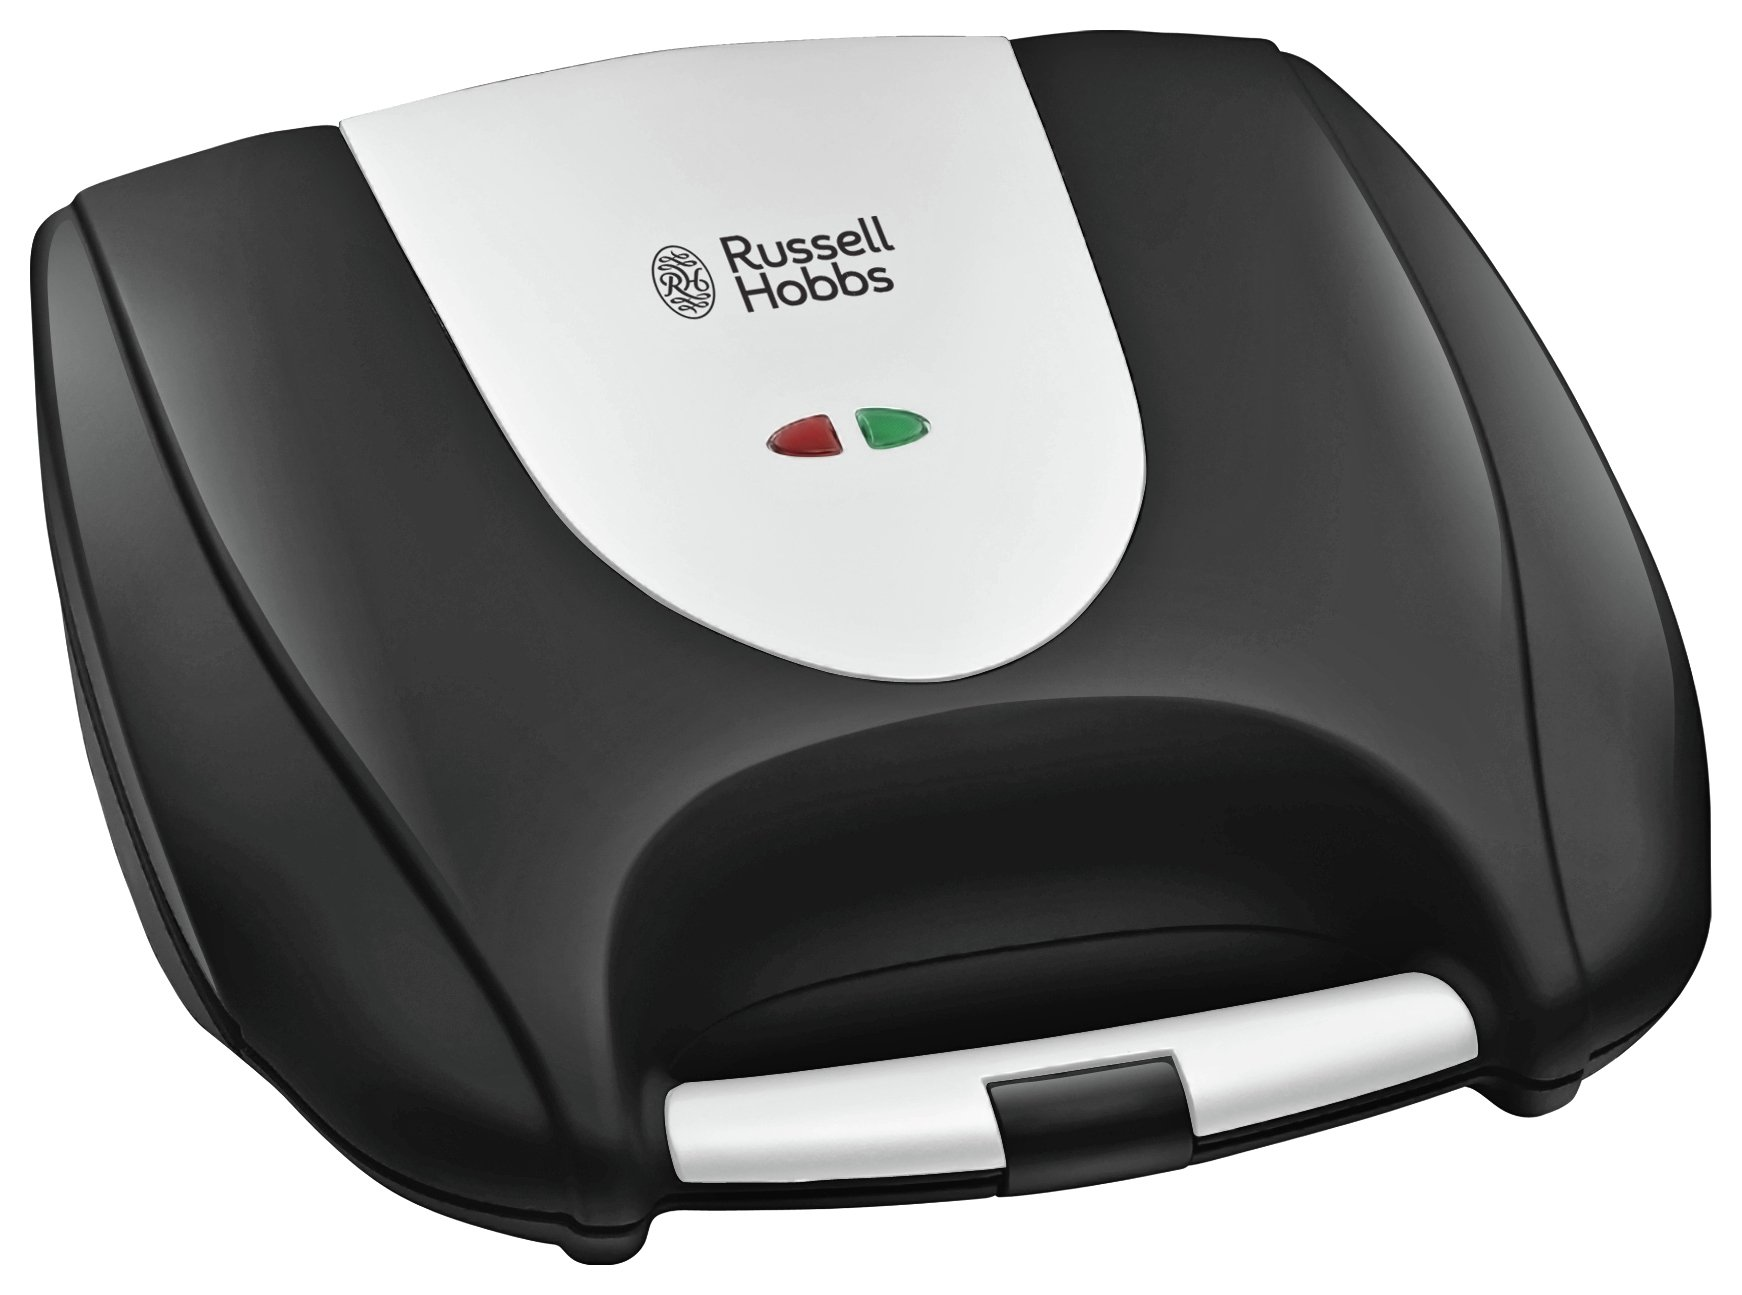 Image of Russell Hobbs - Toaster - 23800 Your Creations Sandwich Maker - Toaster - Black